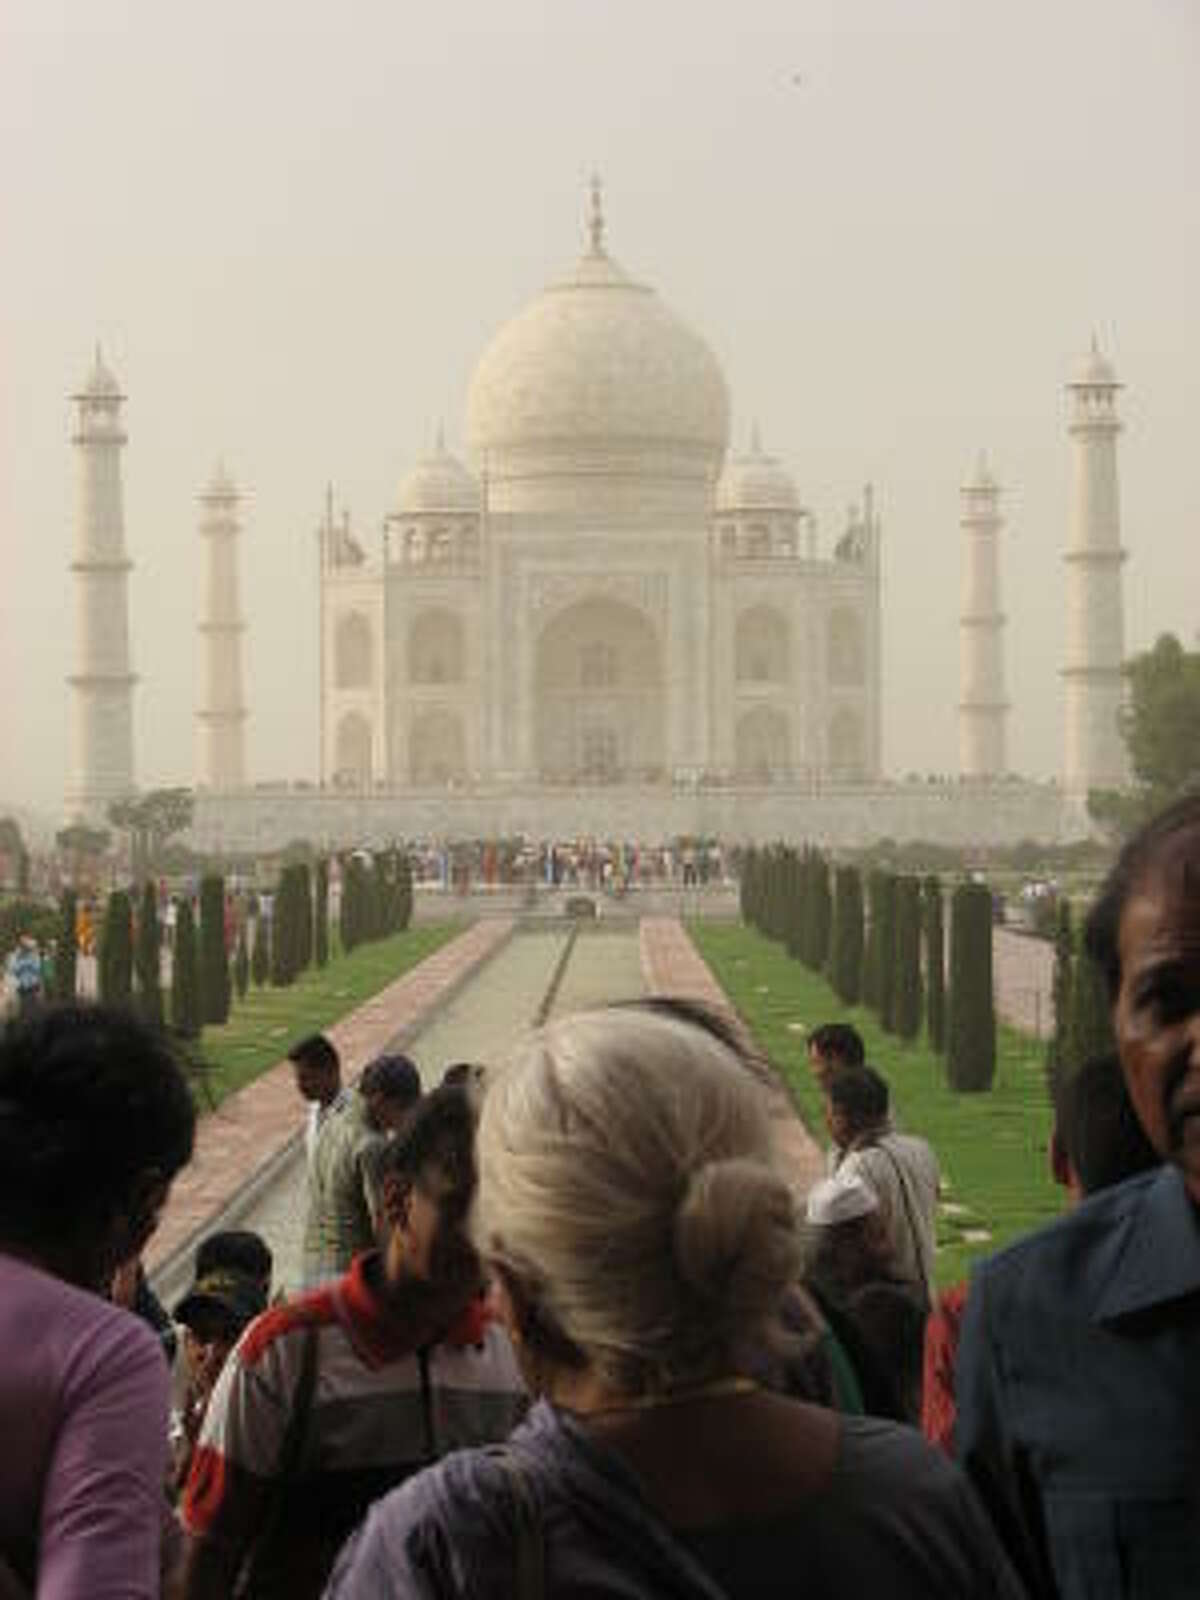 Even in a dust storm, the gardens of the Taj Mahal are packed with people.